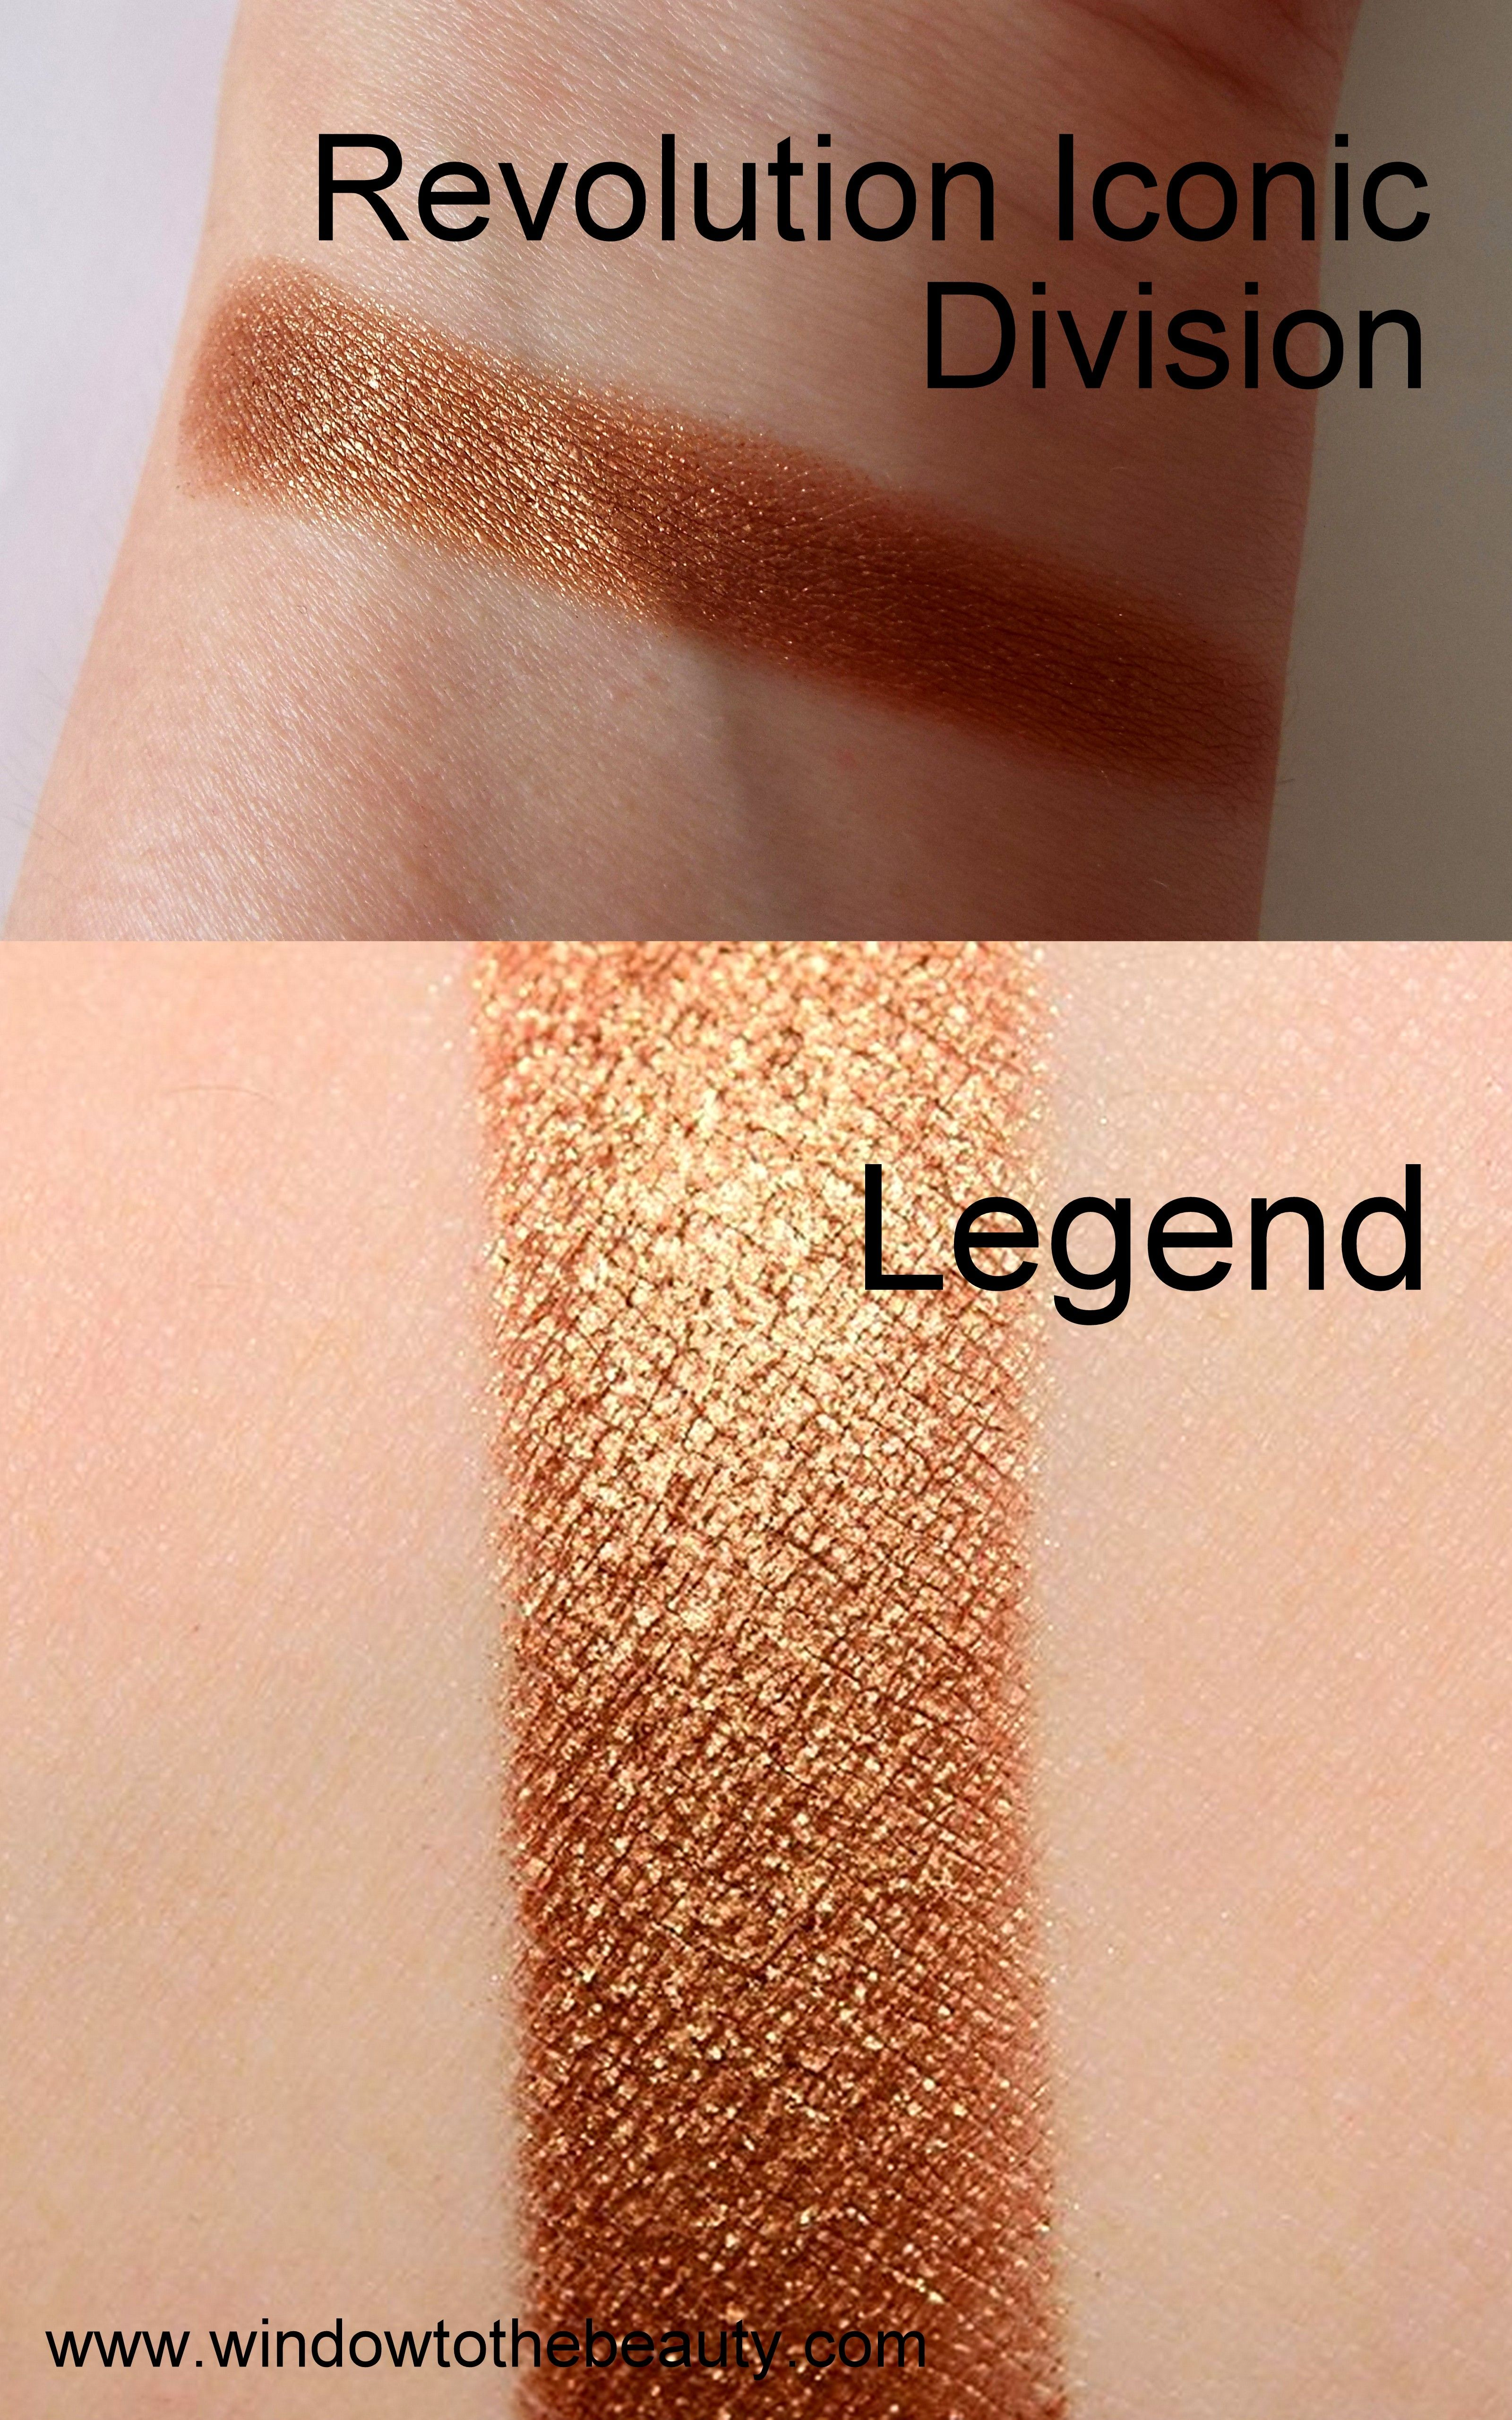 Makeup Geek Legend Dupe Makeup Geek Makeup Dupes